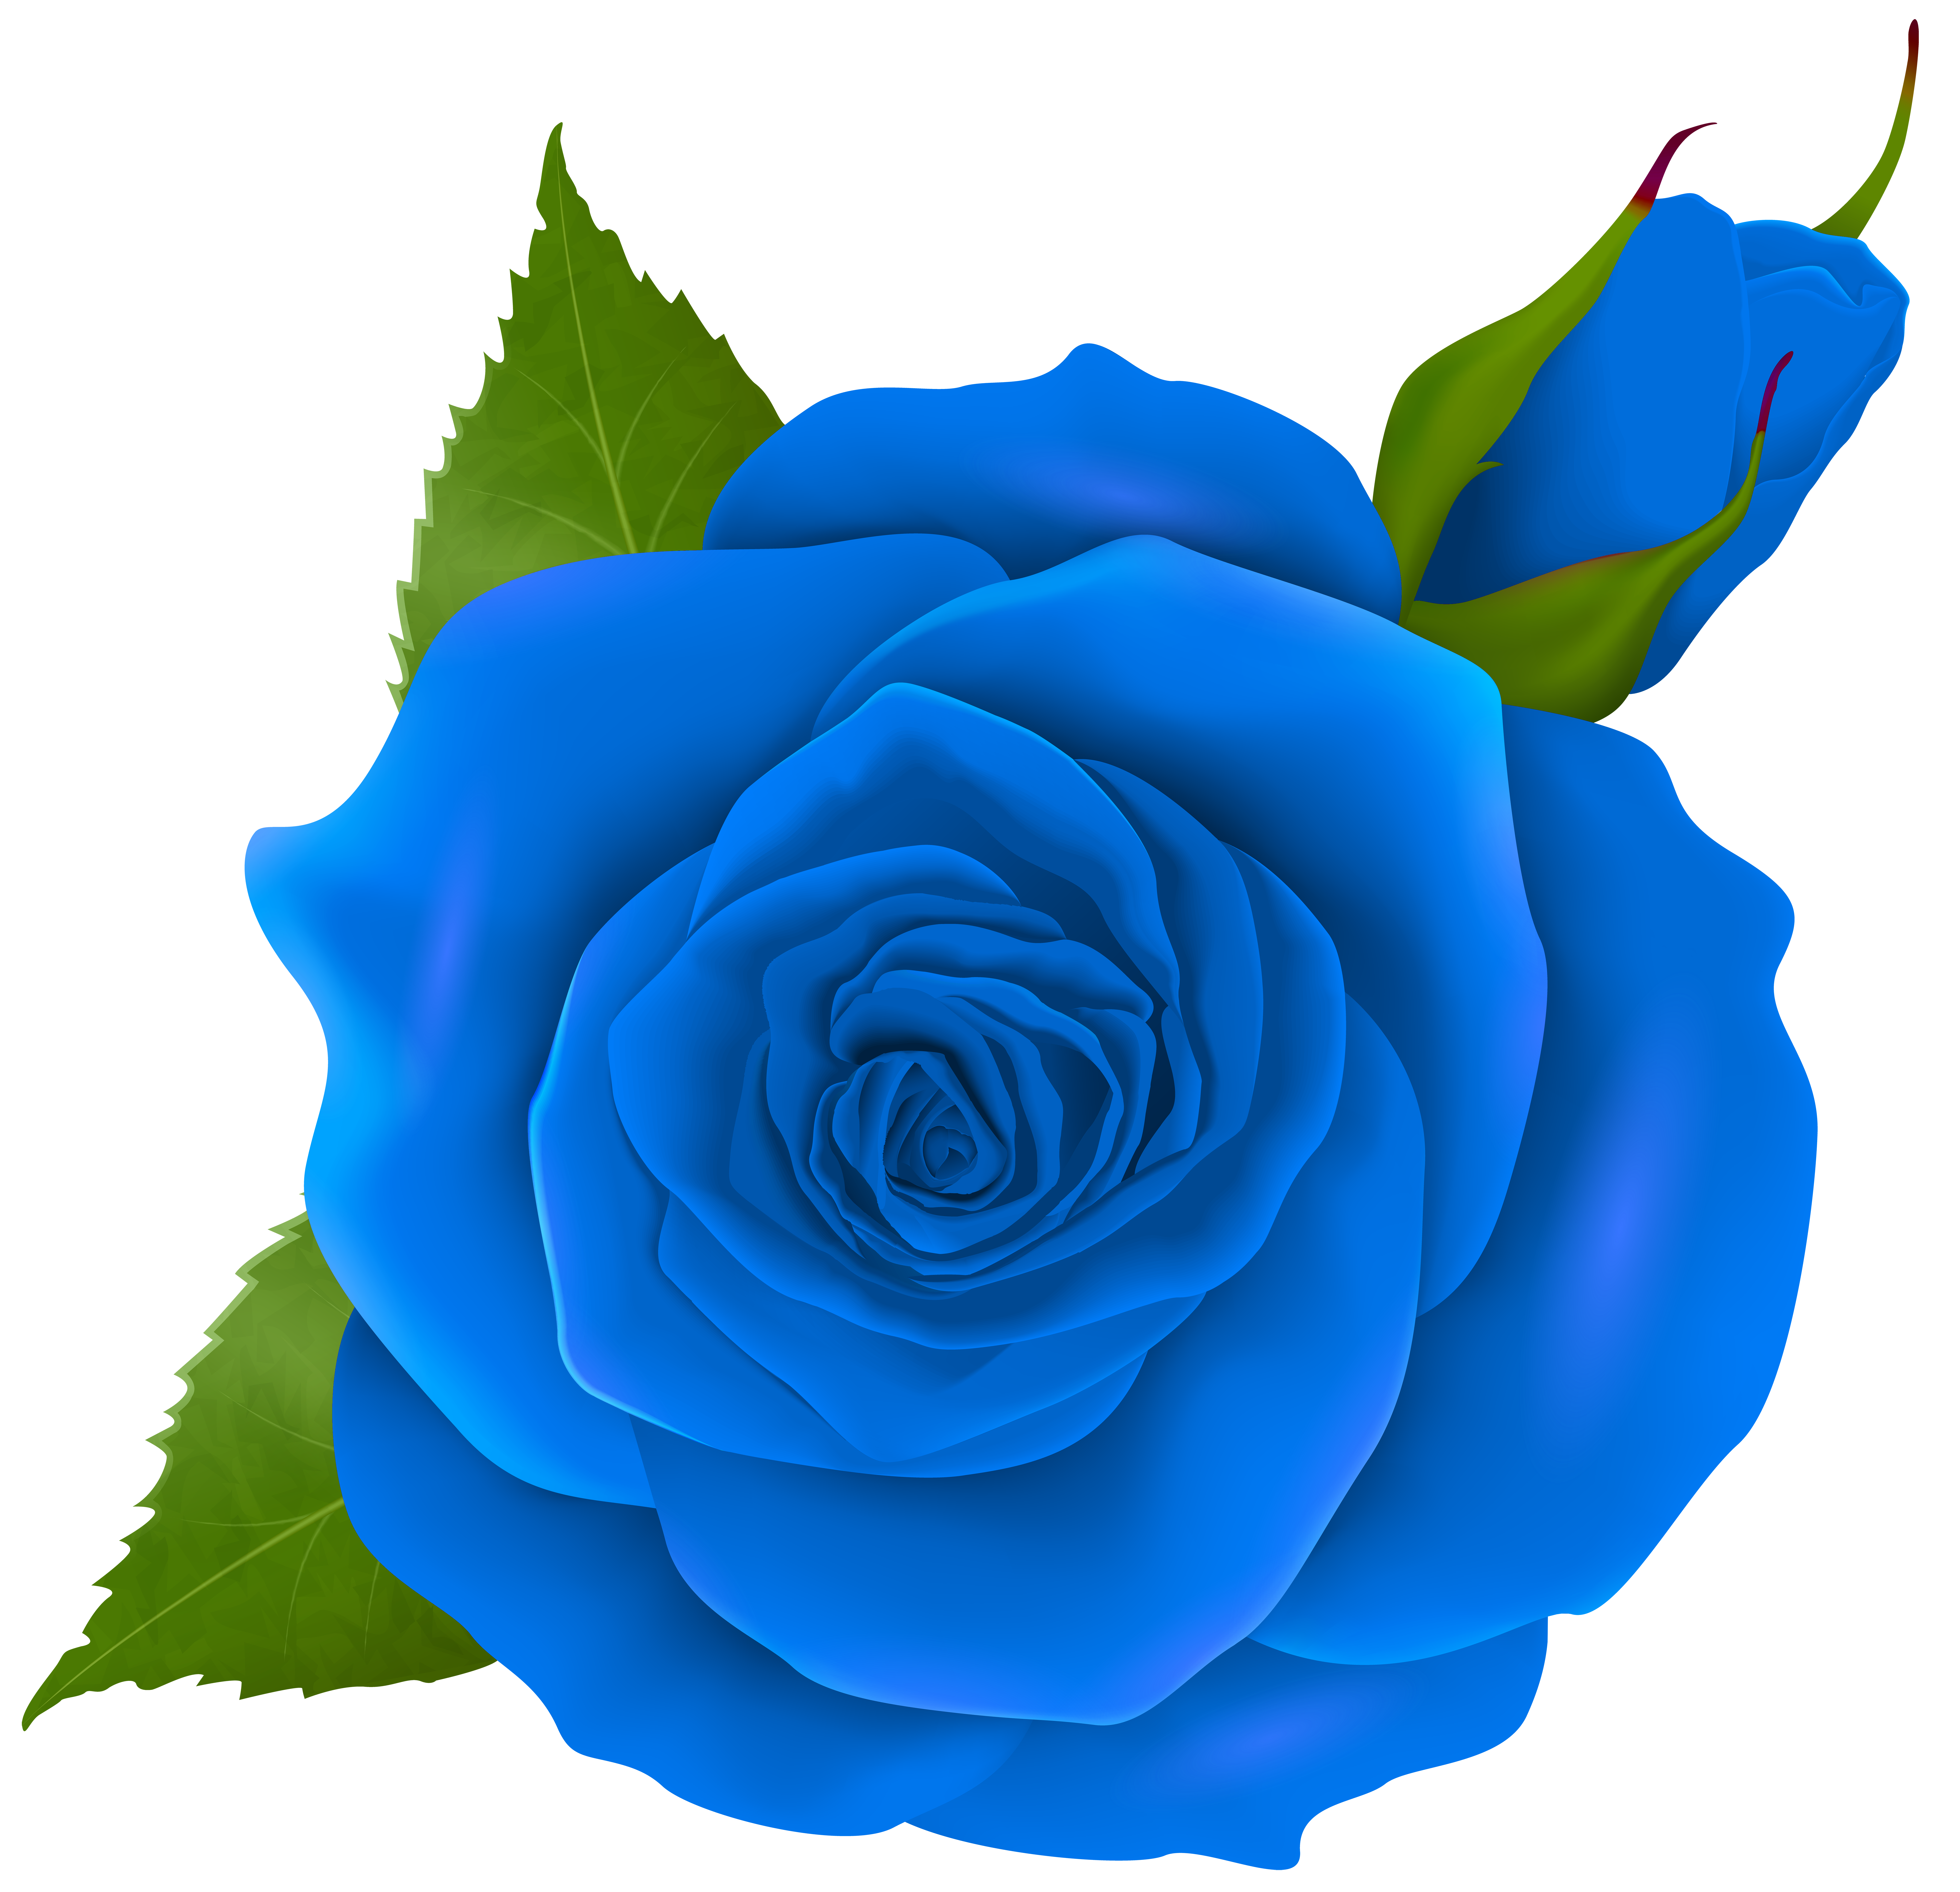 8000x7724 Blue Rose And Bud Transparent Png Clip Artu200b Gallery Yopriceville